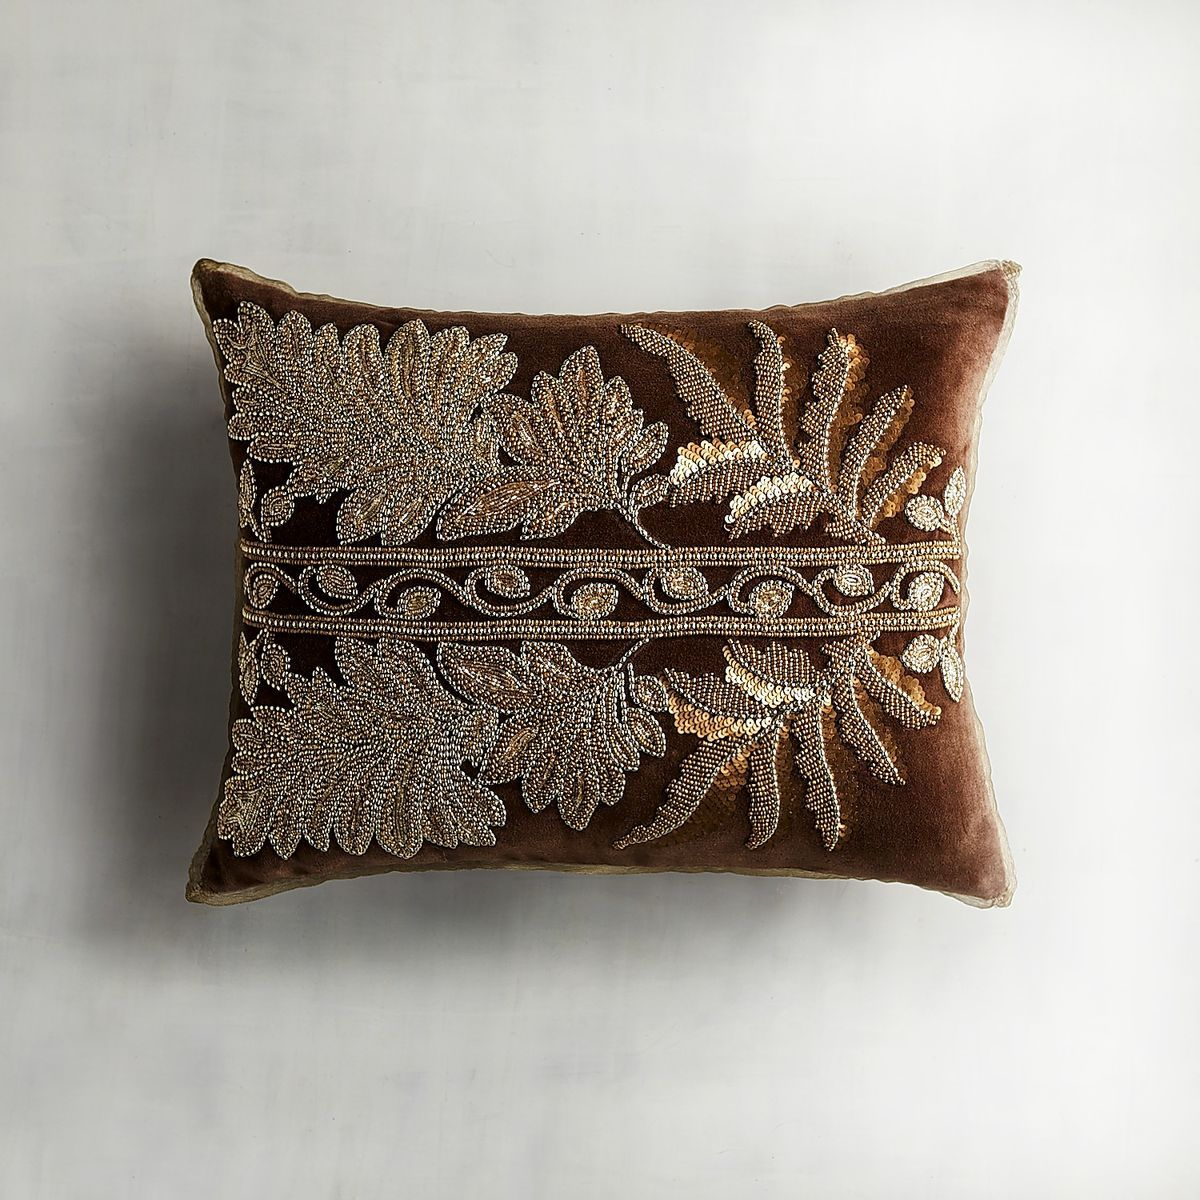 Chocolate Beaded Gilded Leaves Pillow Pier 1 Imports Pillows